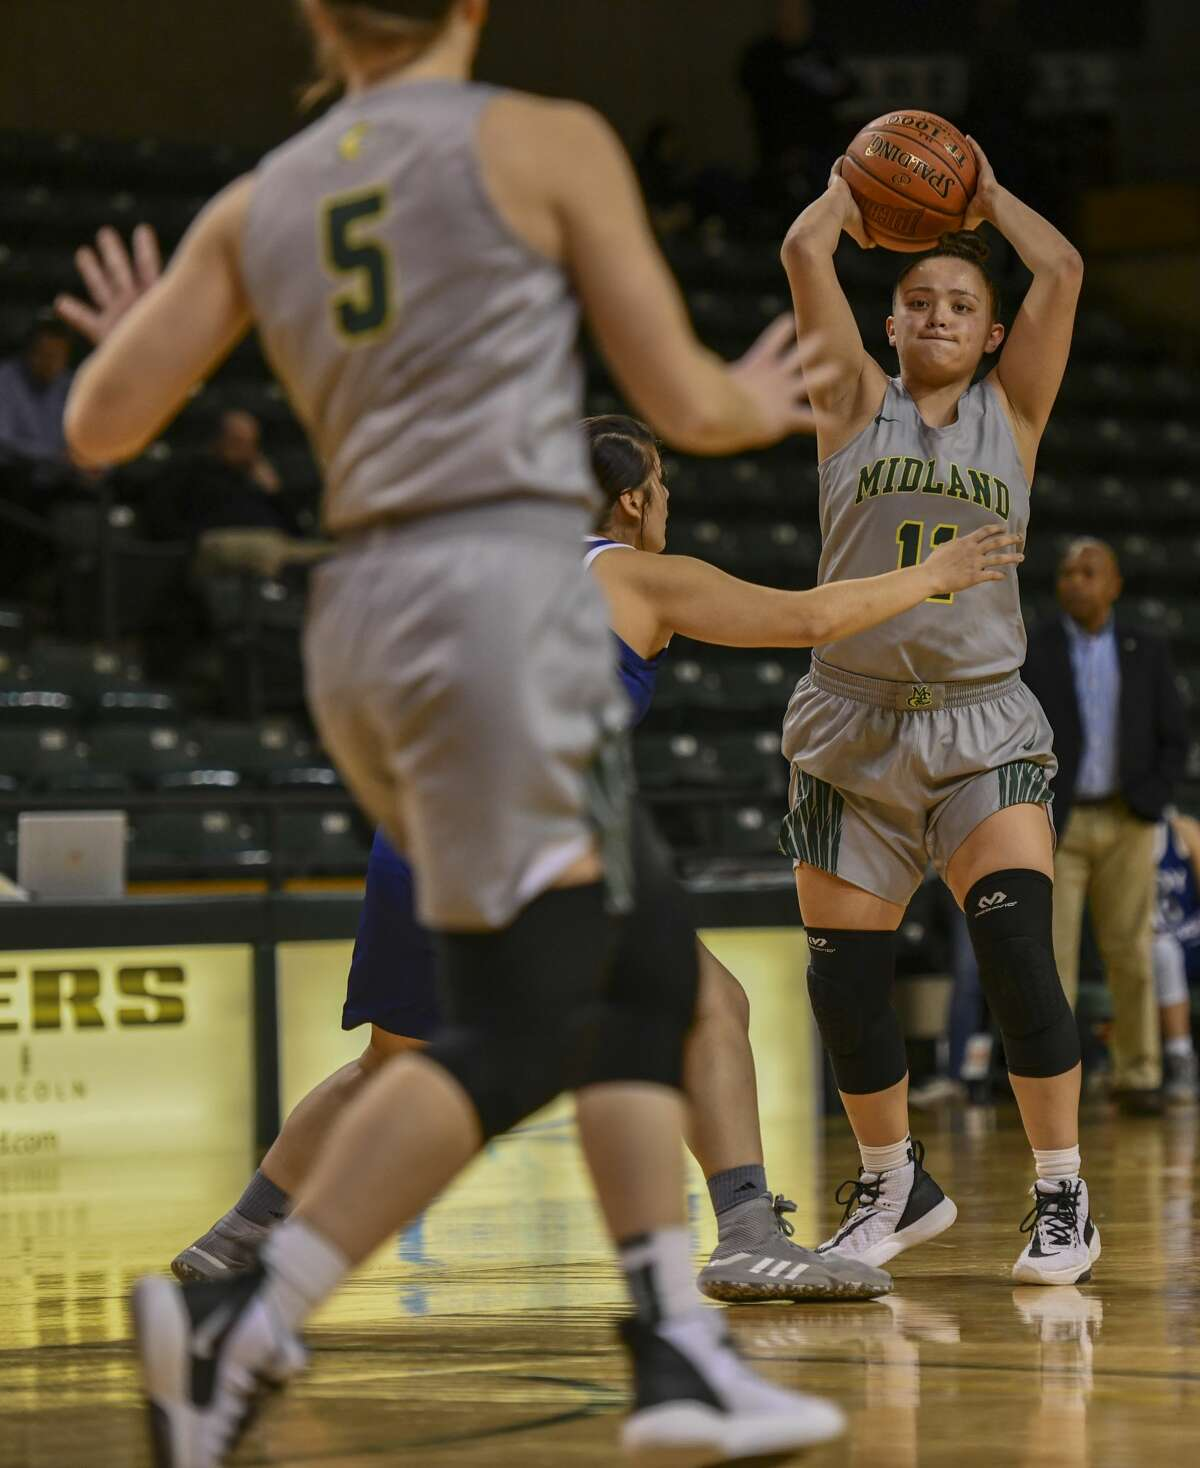 Midland College's Kayla Anderson looks to pass the ball to Grace Beasley as Western Texas College's Carrie Lacy guards her Thursday, Feb. 6, 2020 at Chaparral Center.